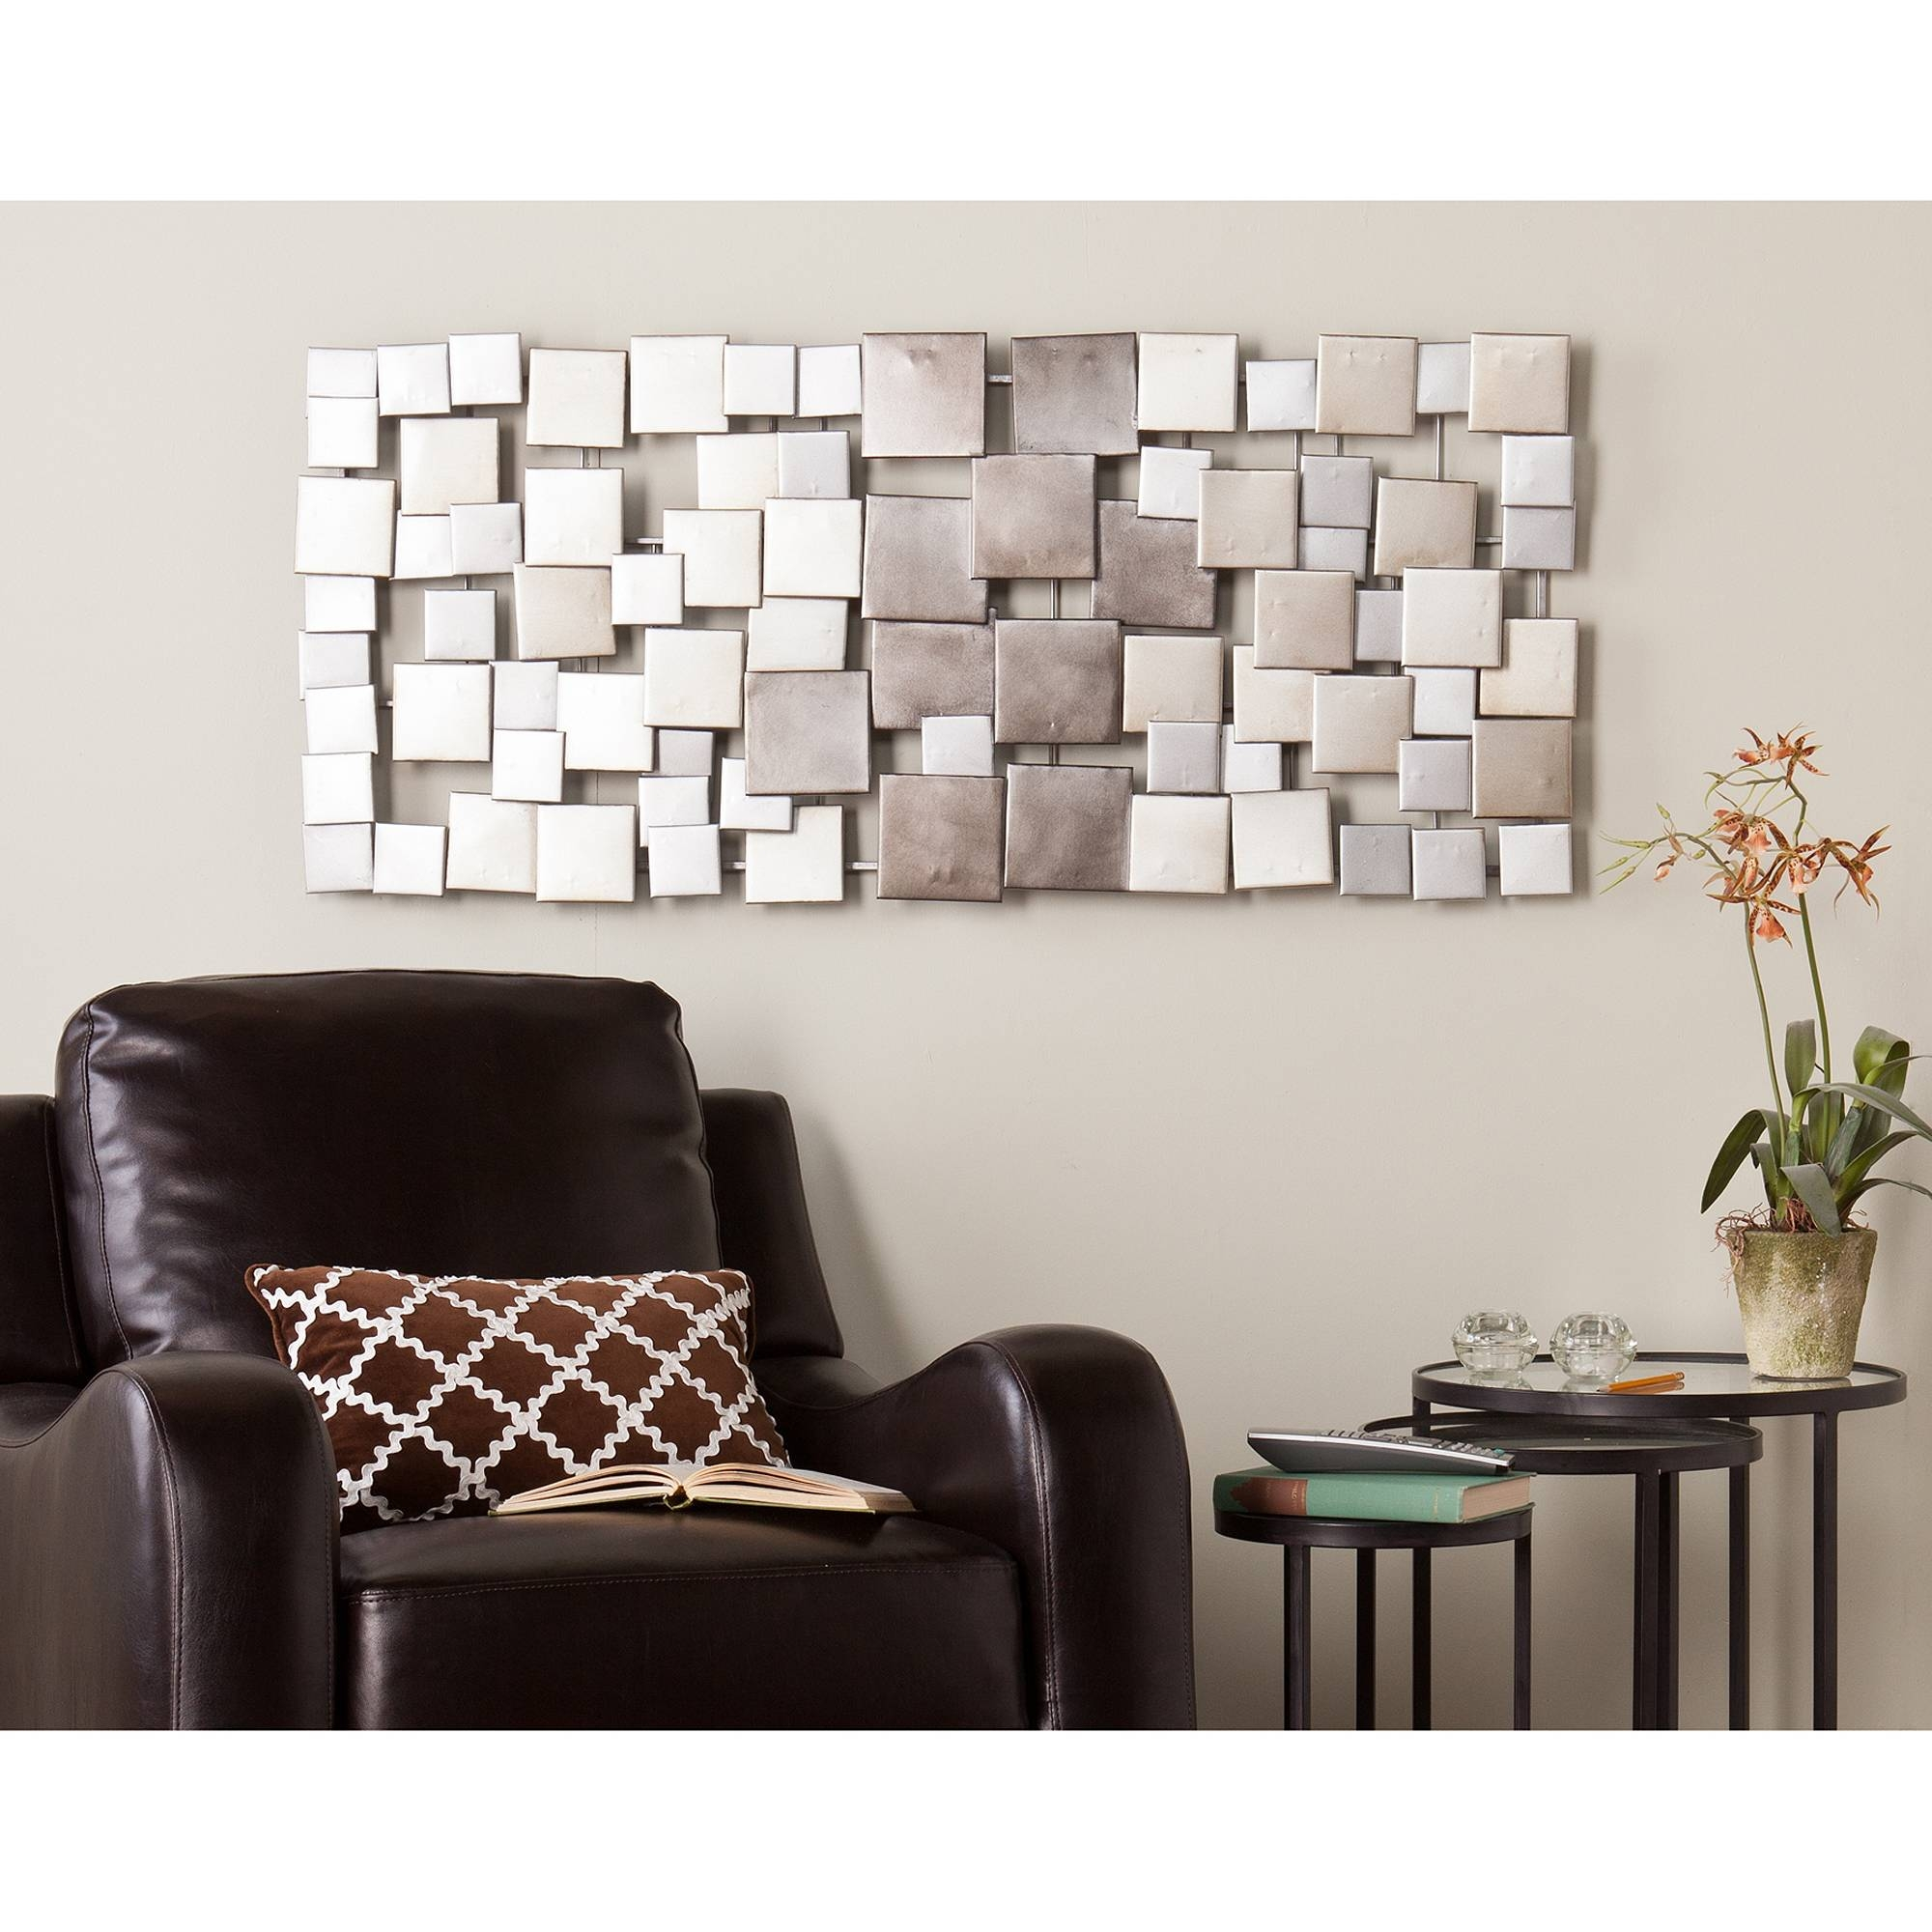 Metal Wall Art – Walmart Regarding Most Current Multi Color Metal Wall Art (View 20 of 20)